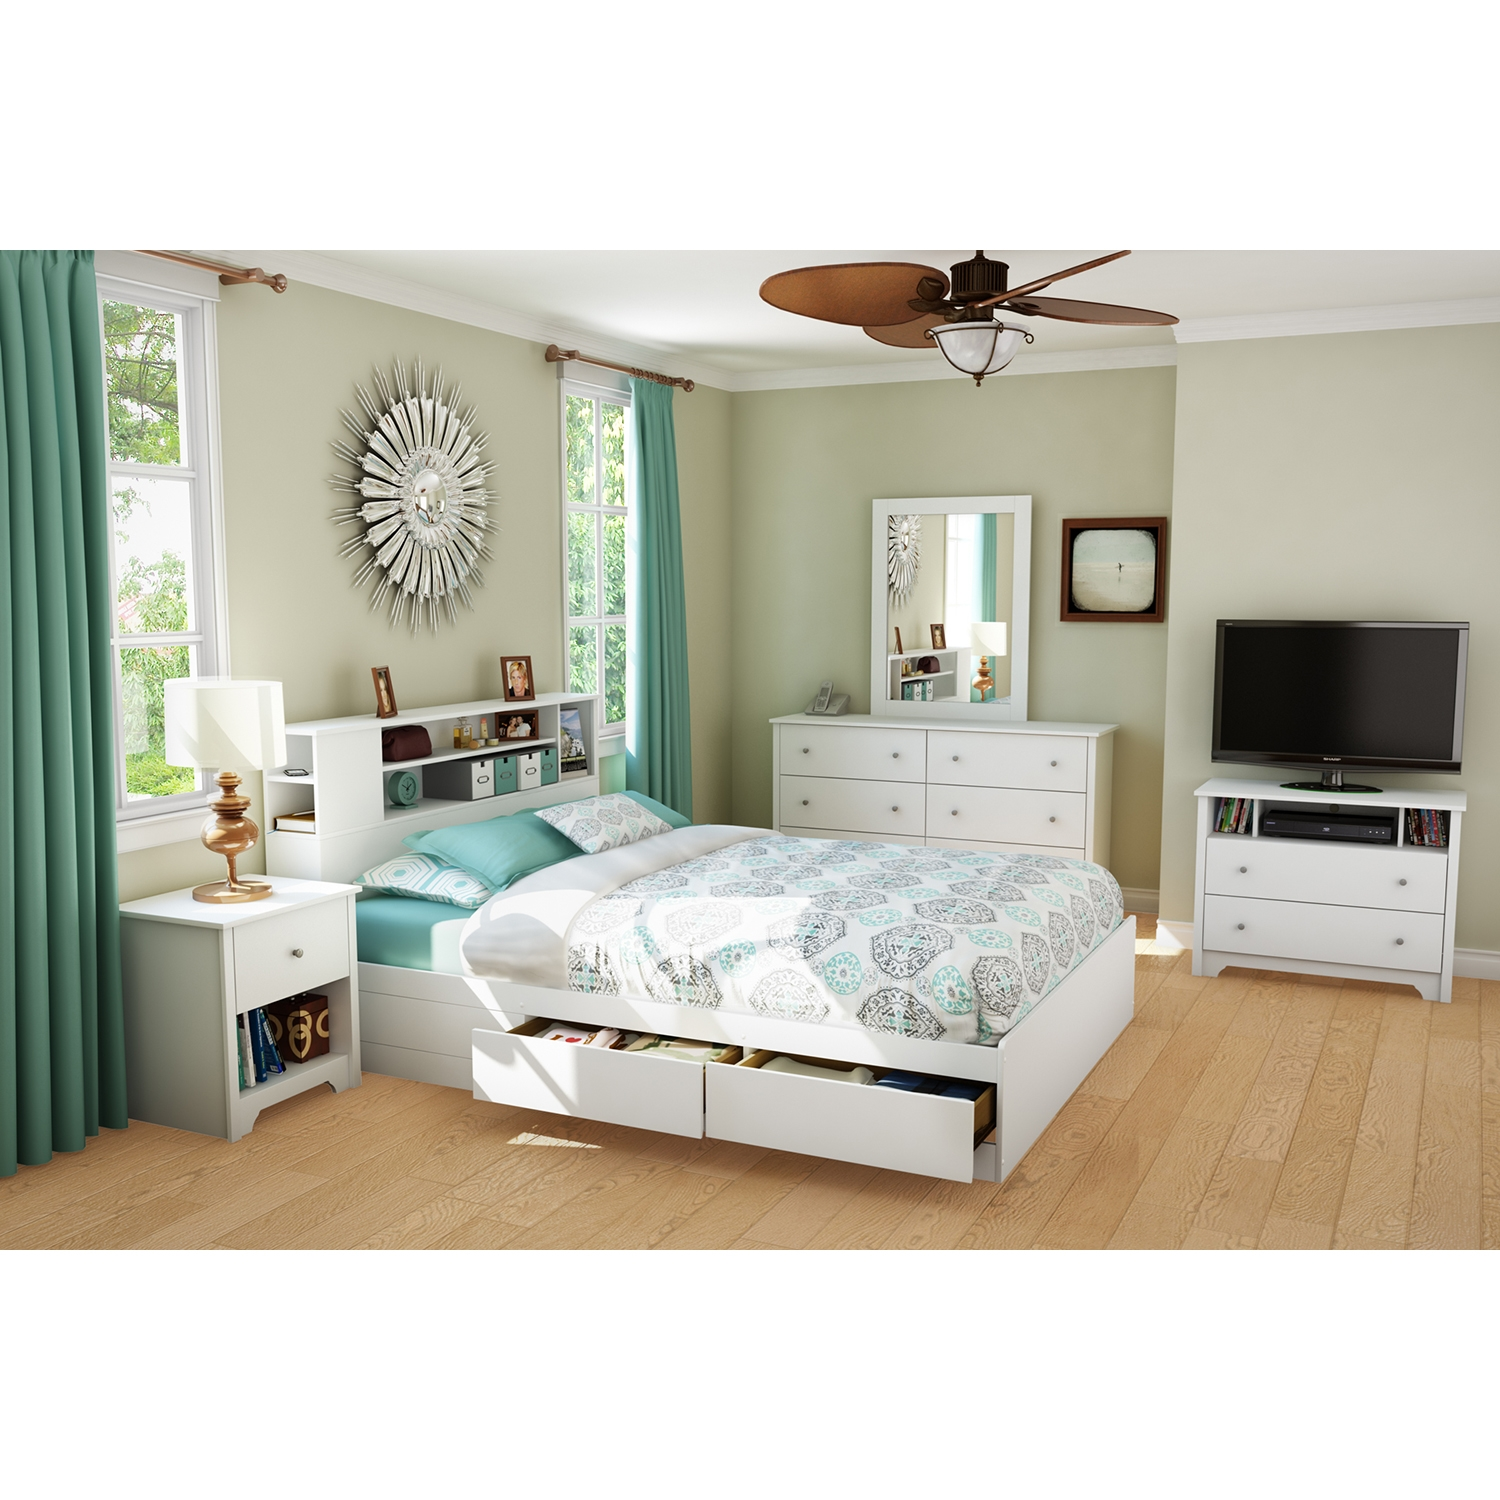 Vito Queen Mates Bed - 2 Drawers, Bookcase Headboard, Pure White - SS-10036